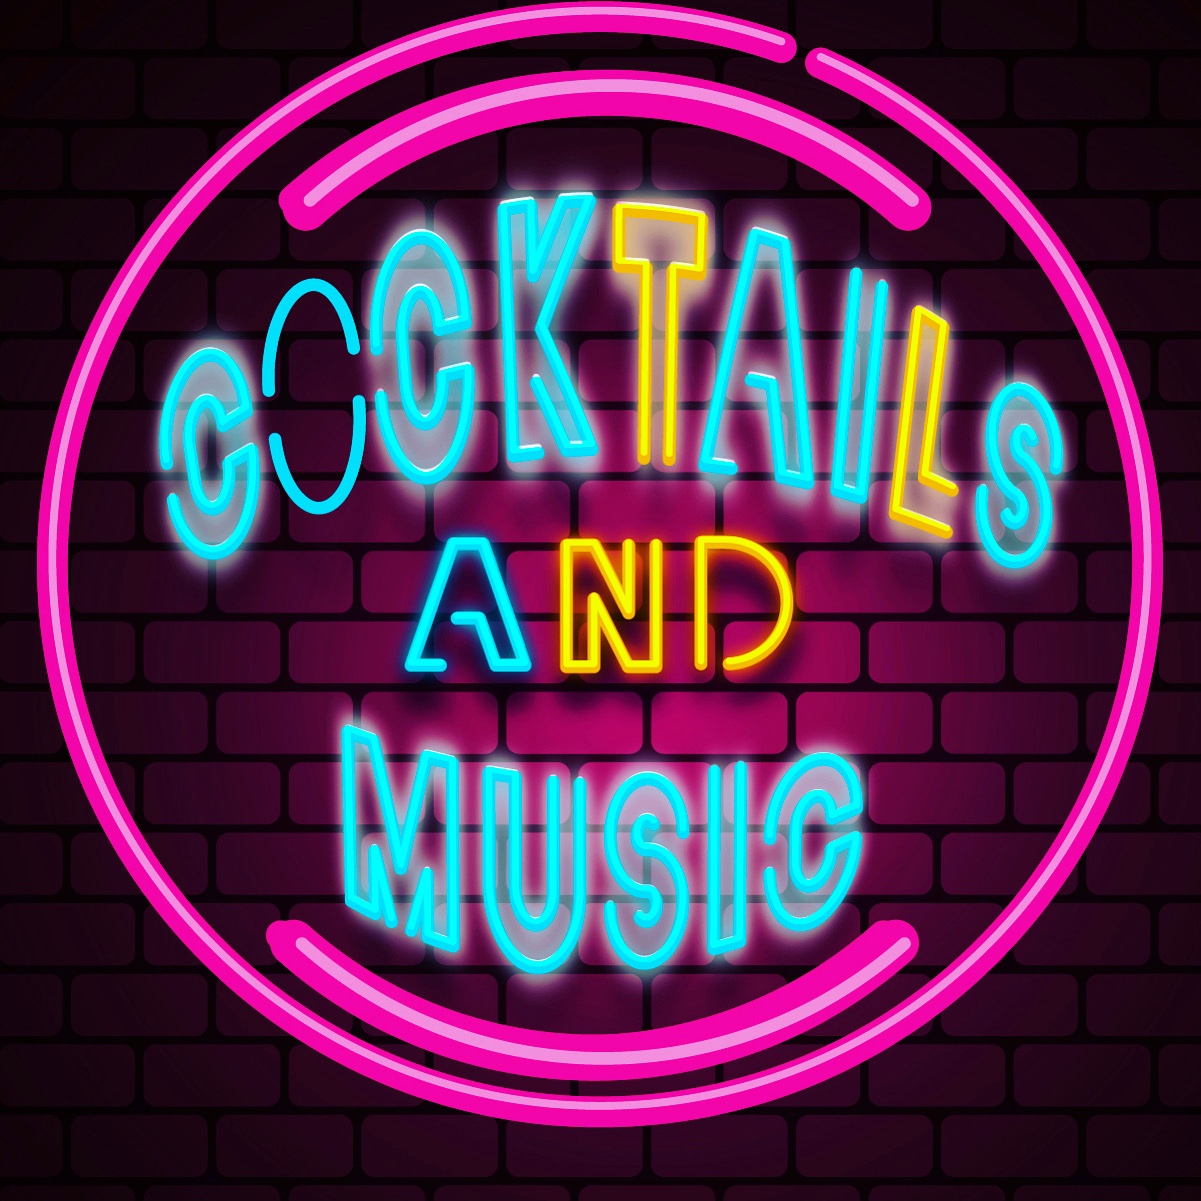 cocktailsandmusic